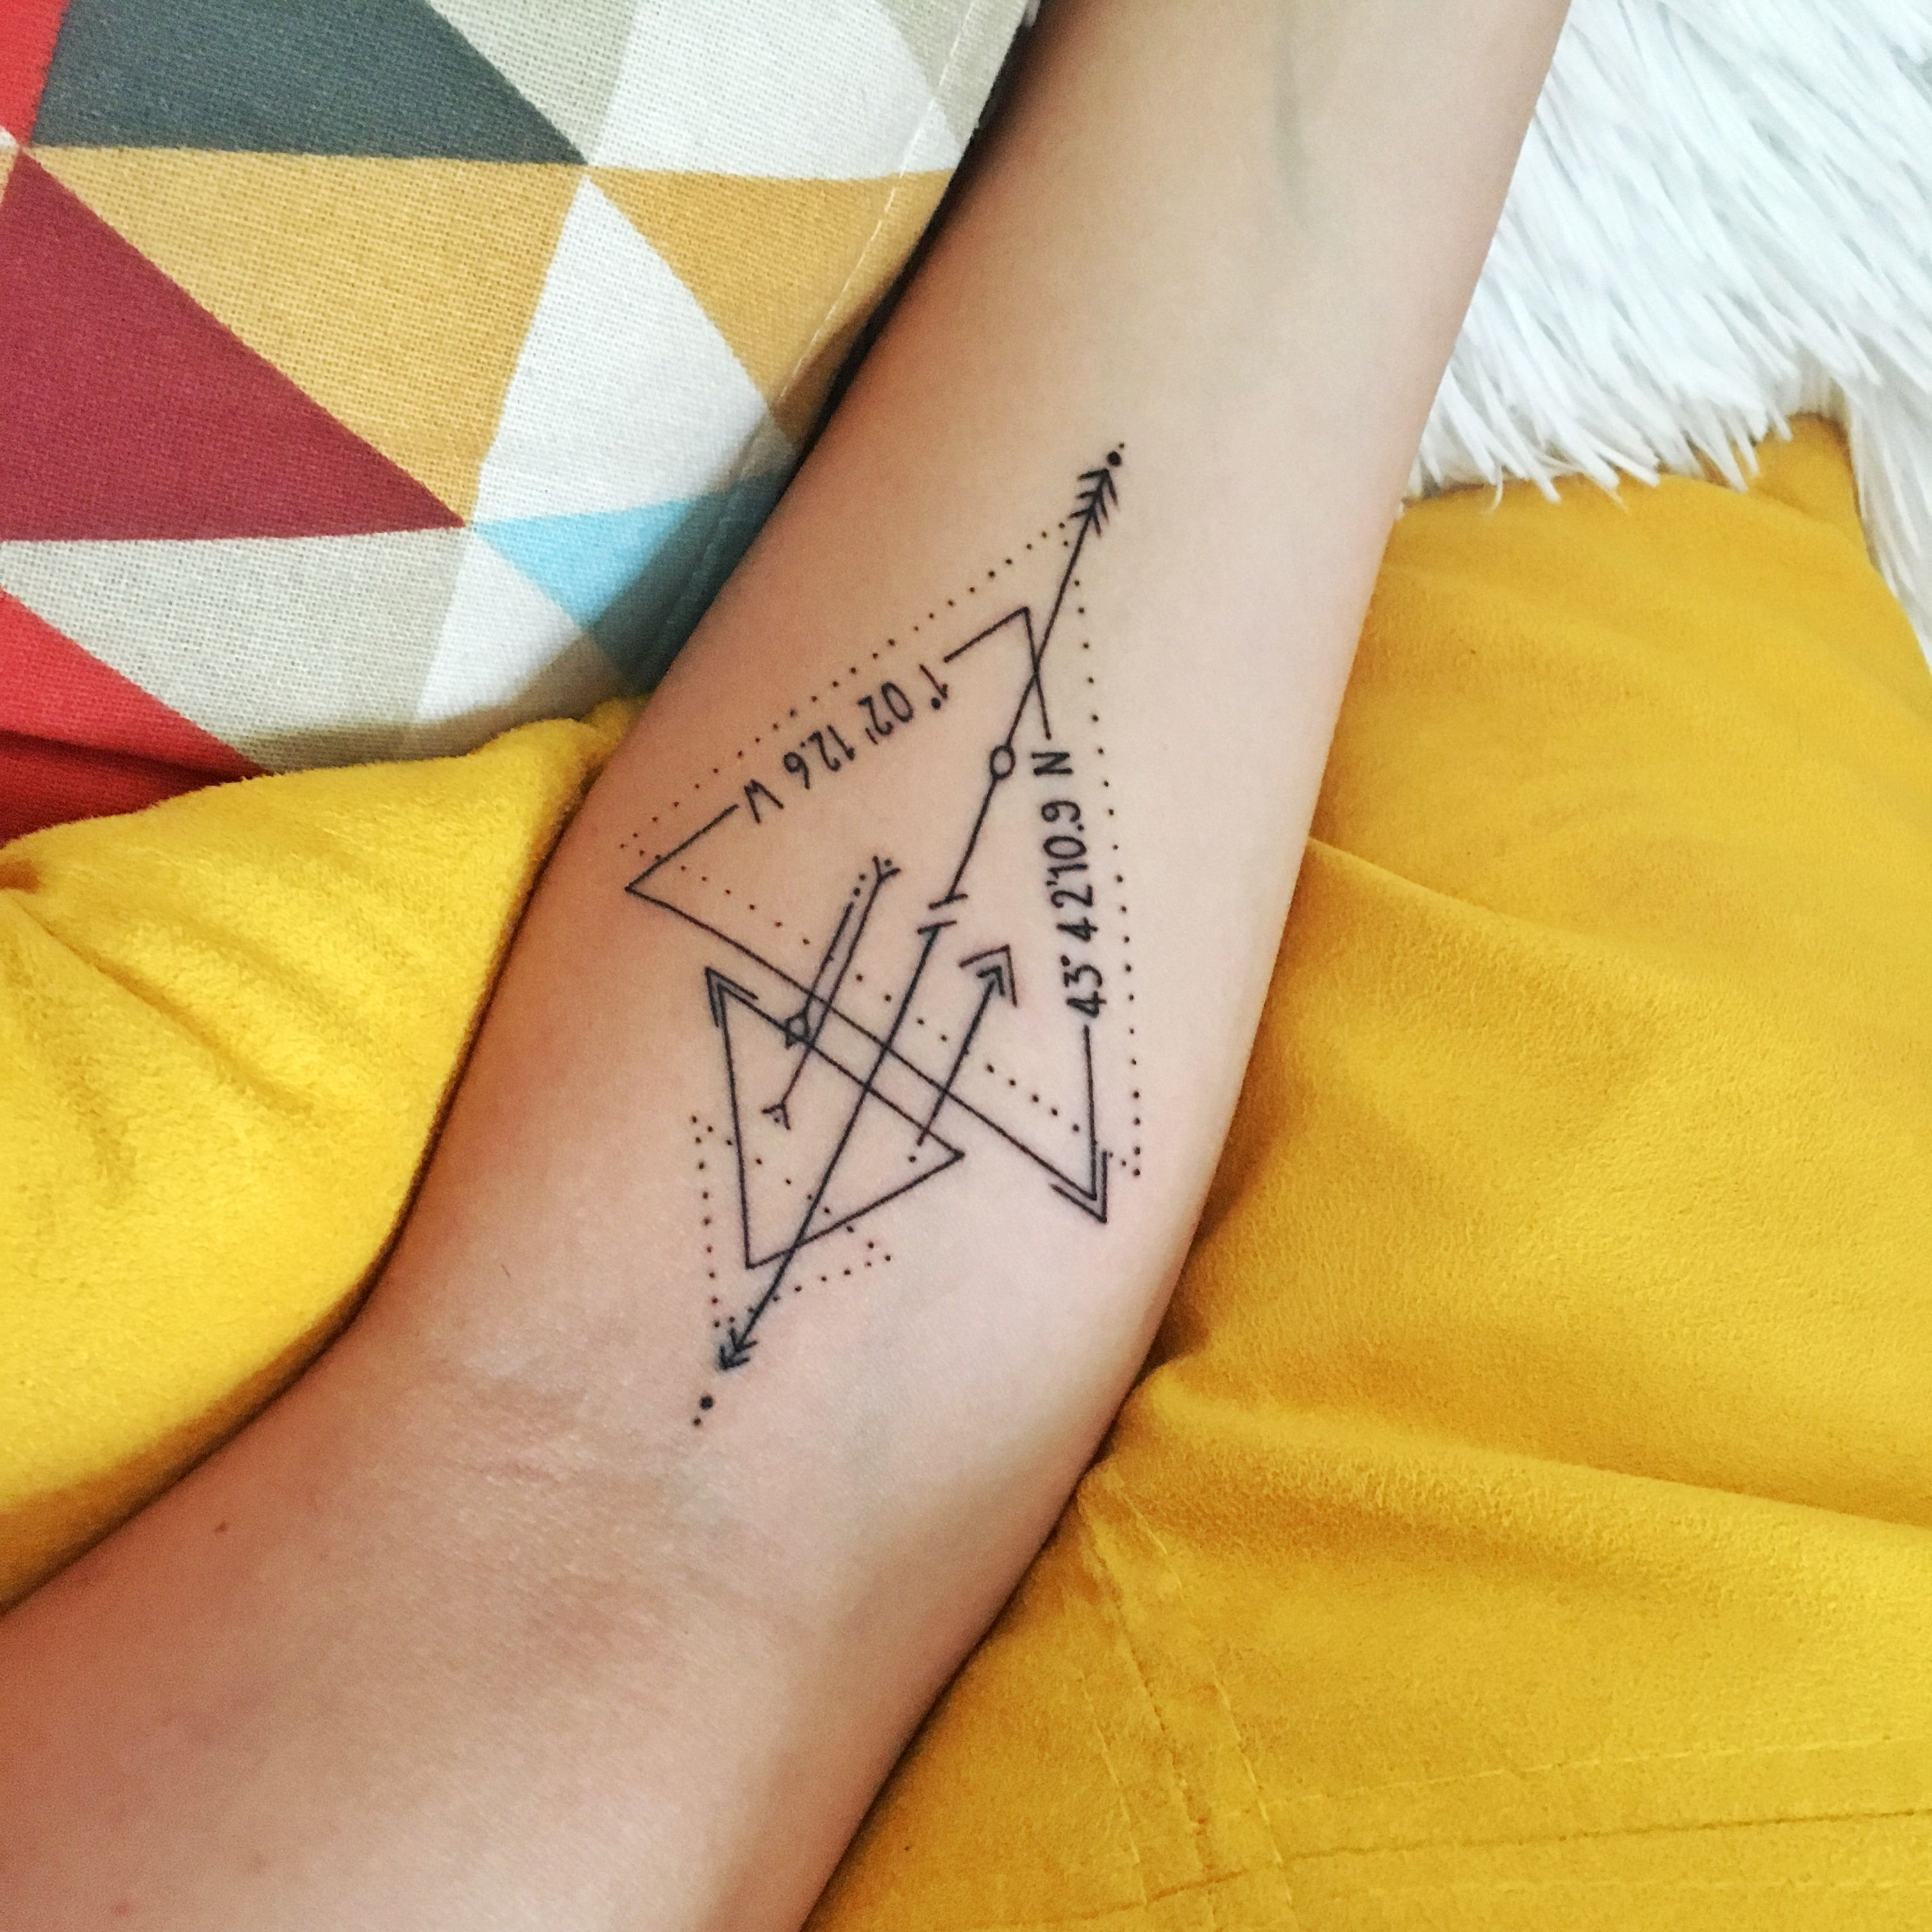 tattoo triangles fl ches bras coordonn es gps ink pinterest tatouages lettre tatouage. Black Bedroom Furniture Sets. Home Design Ideas